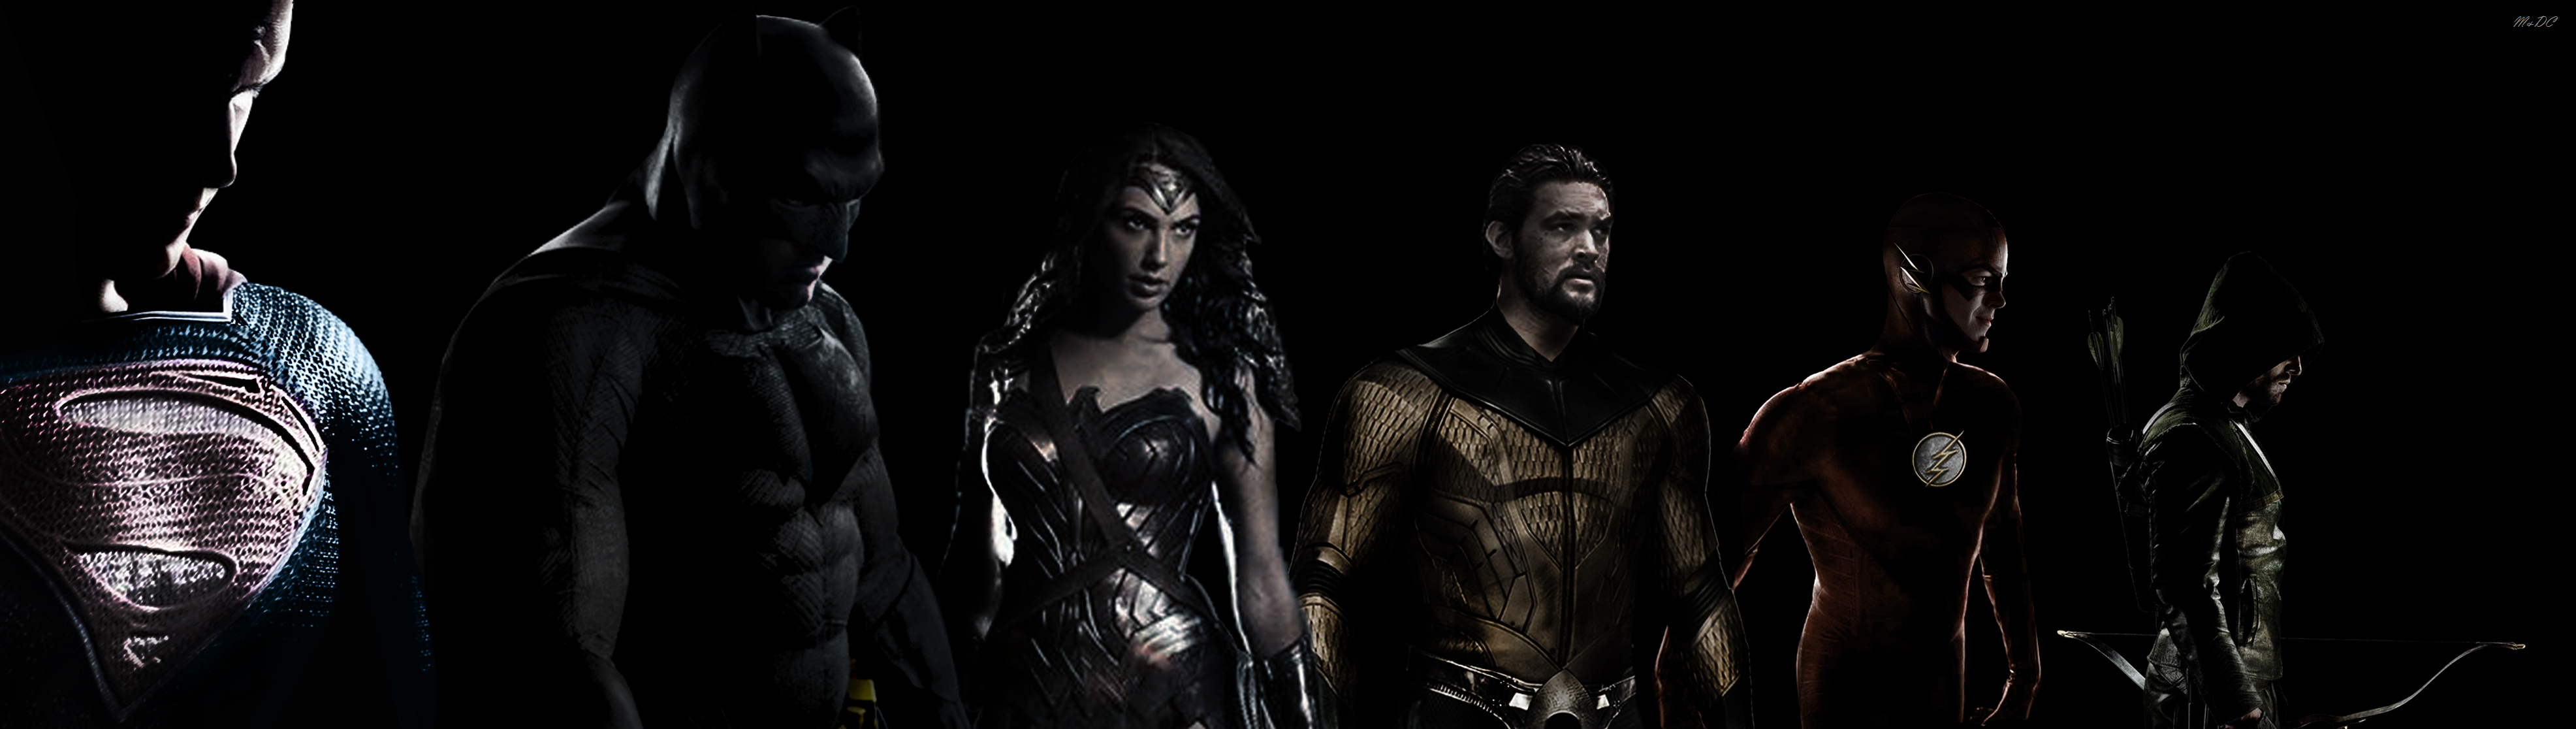 Justice League The Movie Teaser Trailer Justice League Teaser by